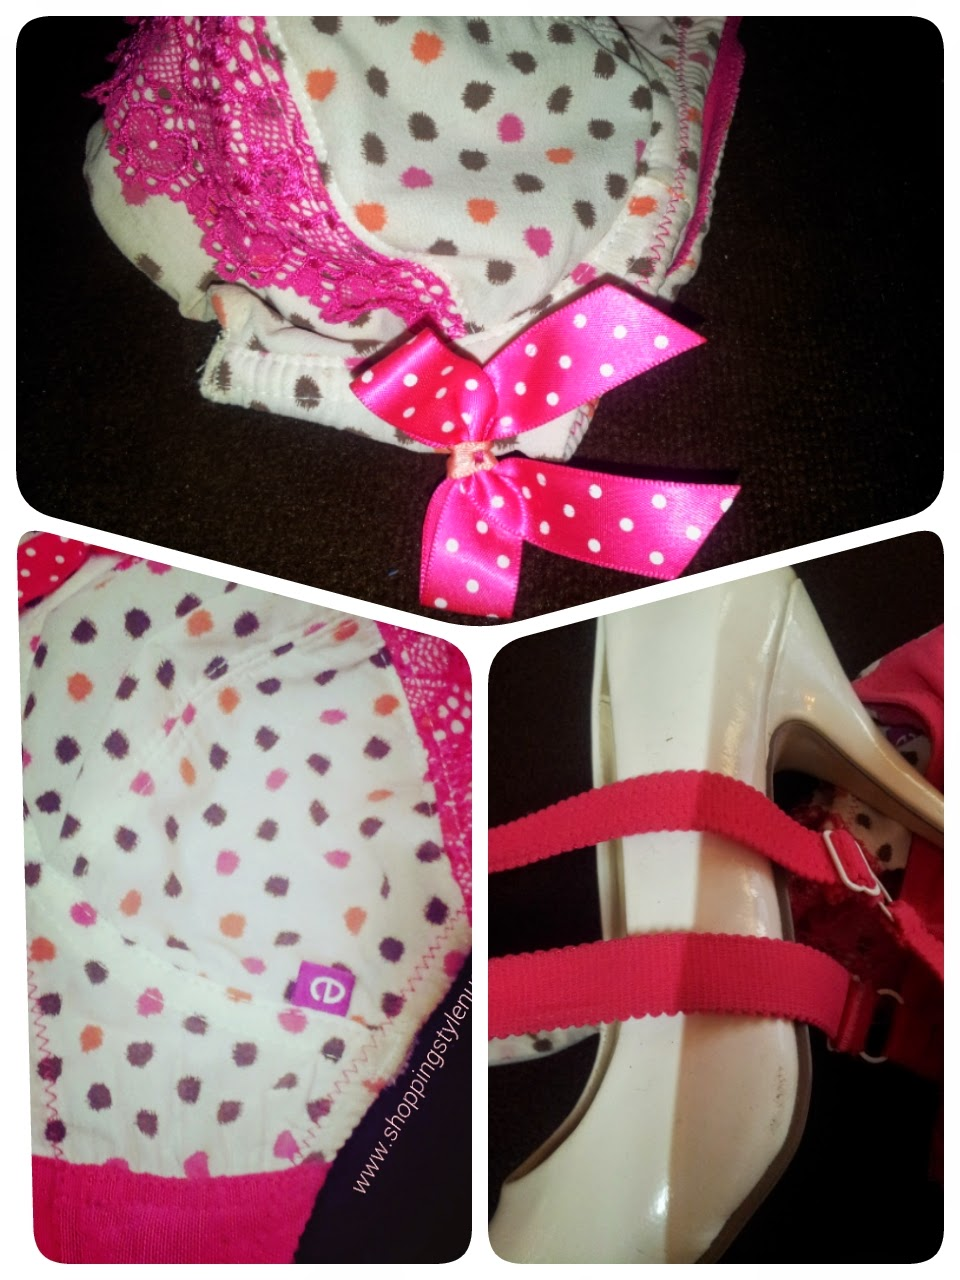 Enamor Girlies Bra With Pink Bow, Lace and Scalloped Strap